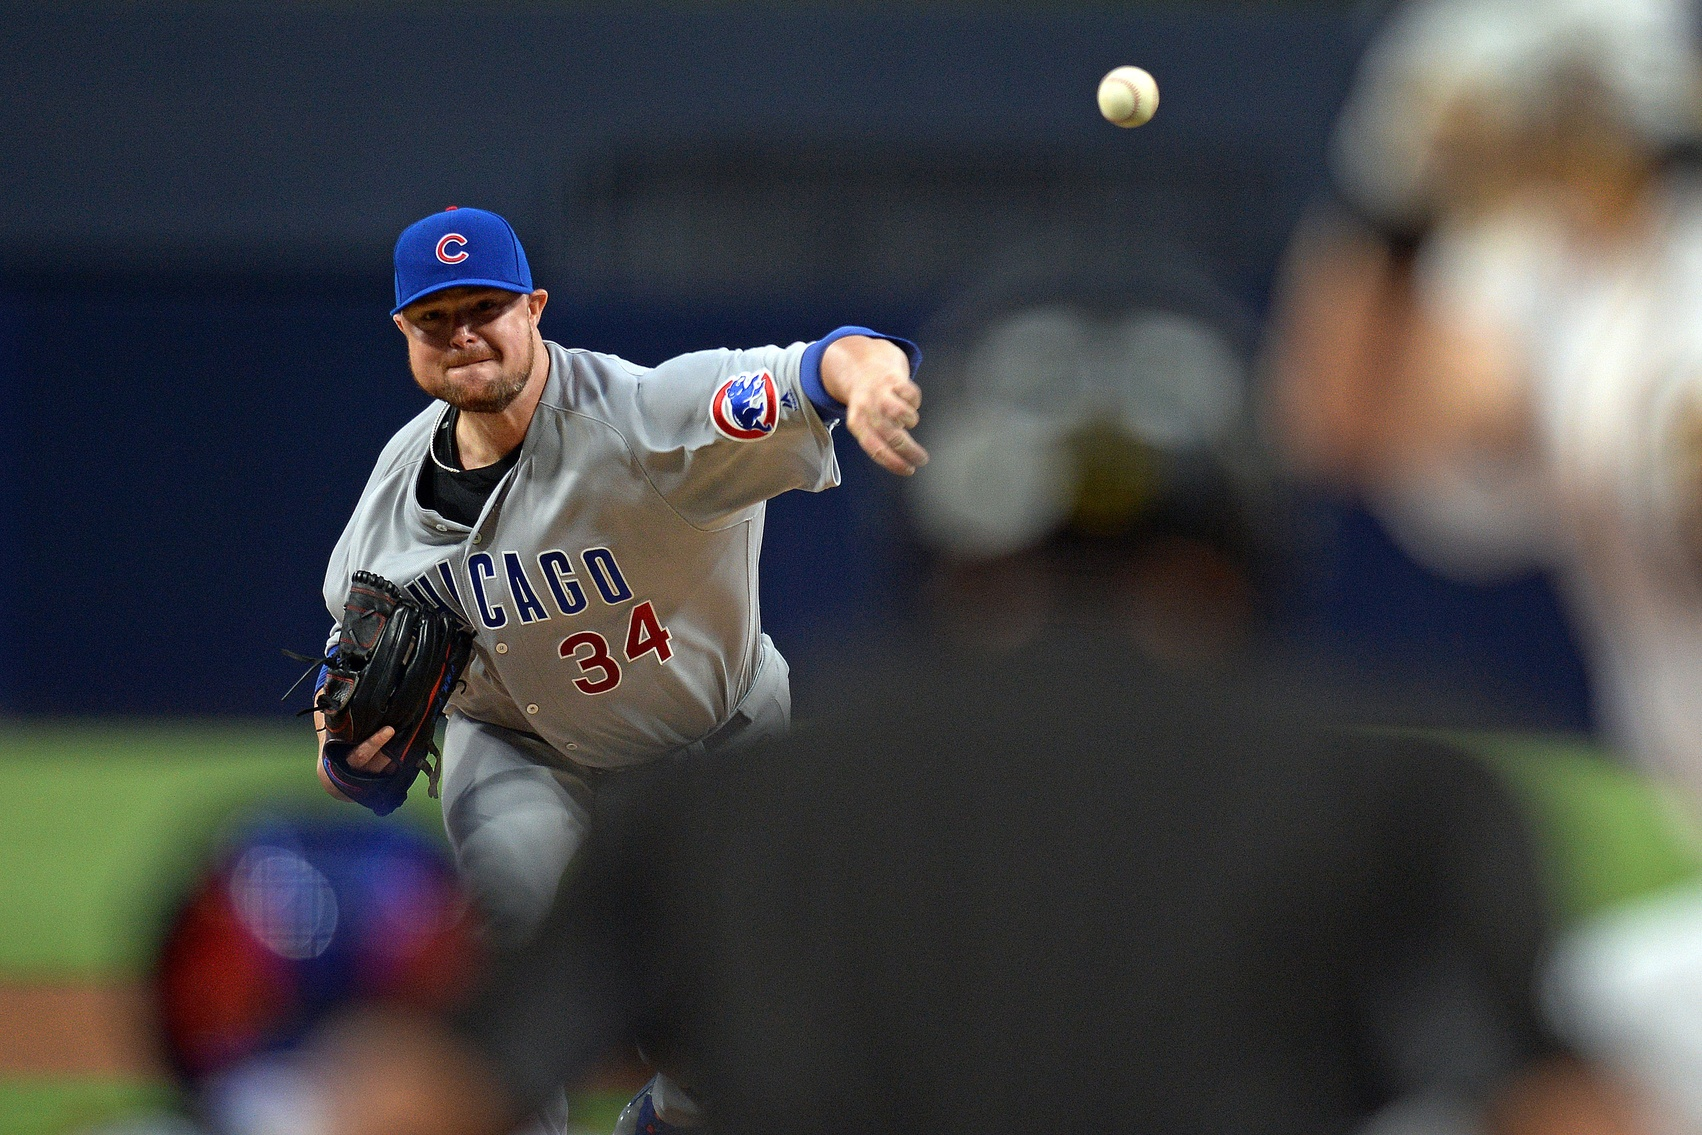 Clemens nicked early, Padres lose 6-3 to Cubs